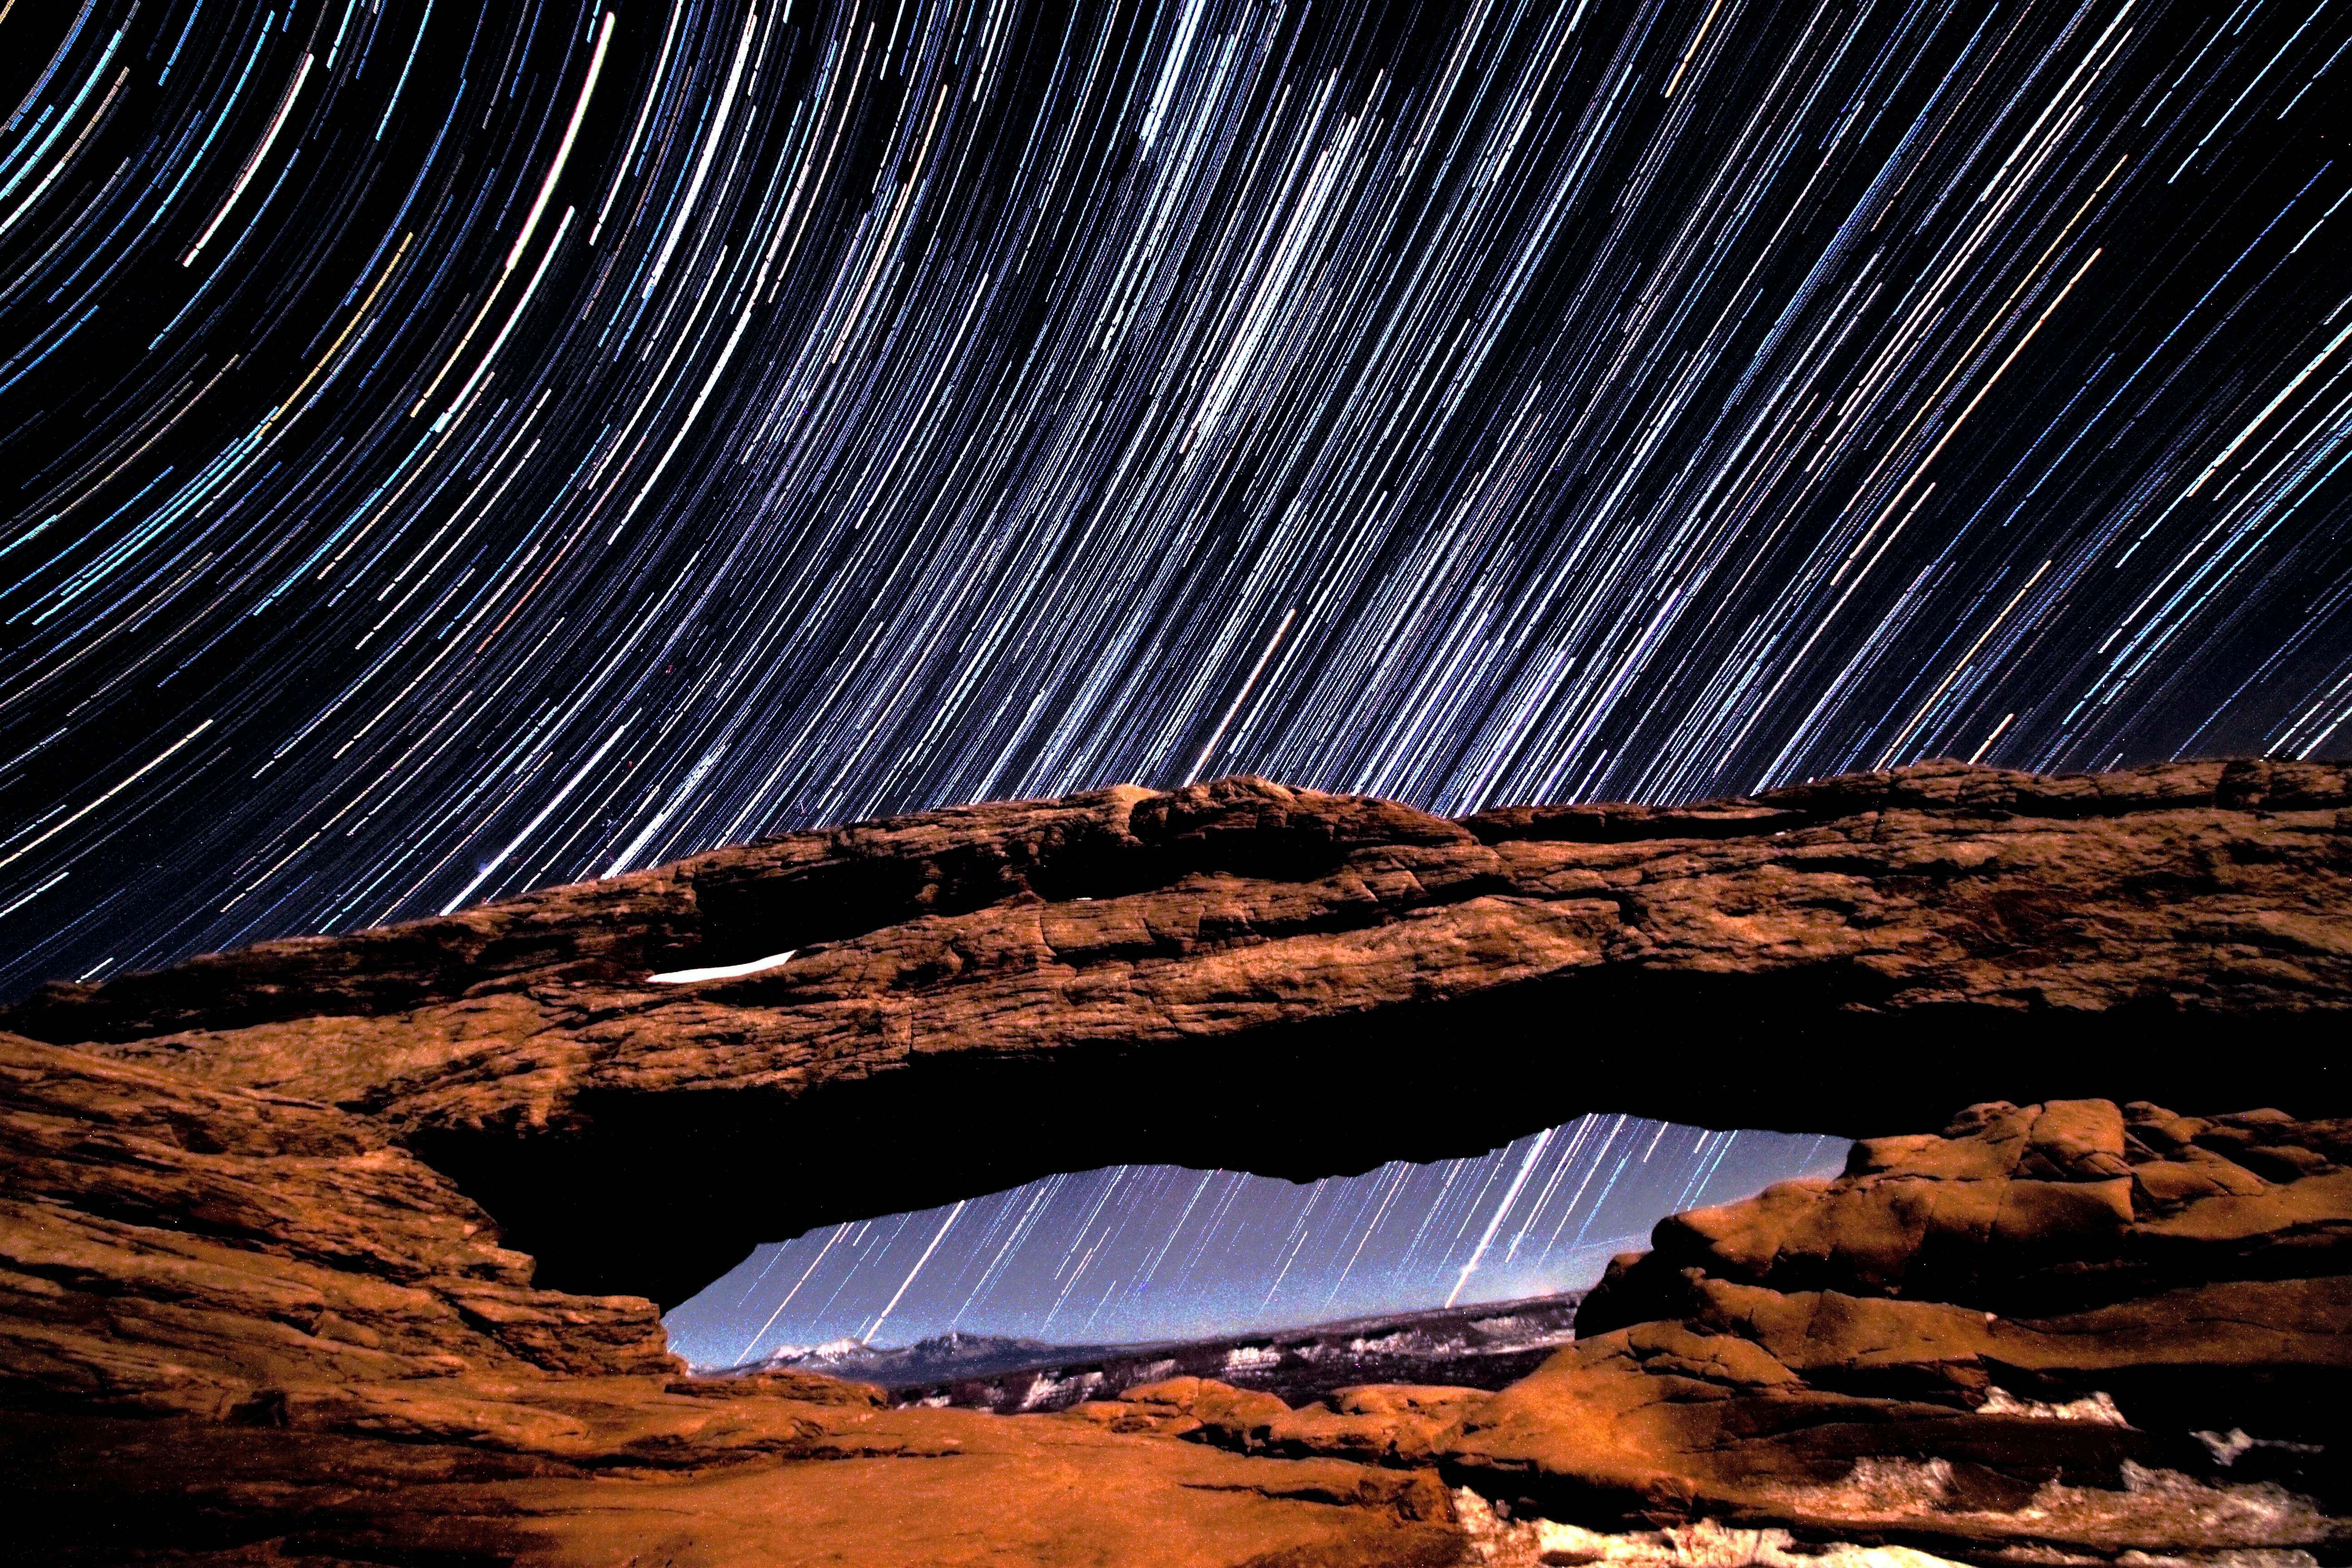 timelapse photo of stars and brown rock arch